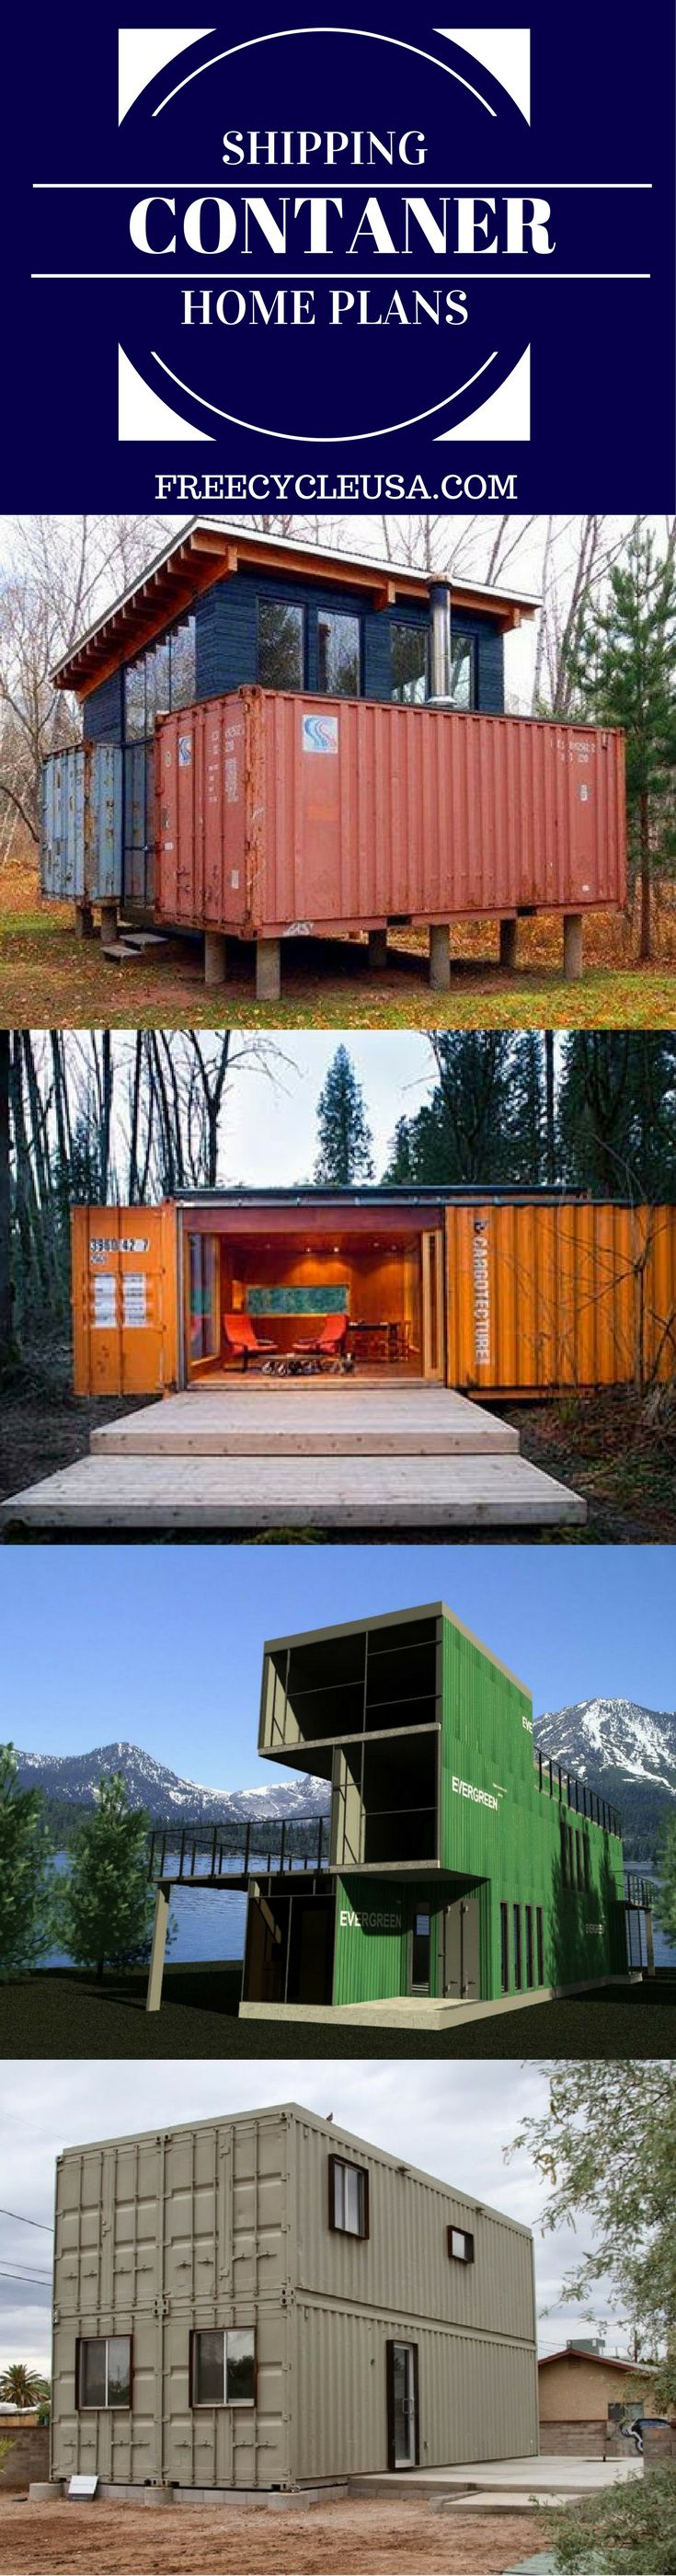 1730 best shipping container homes images on pinterest | shipping